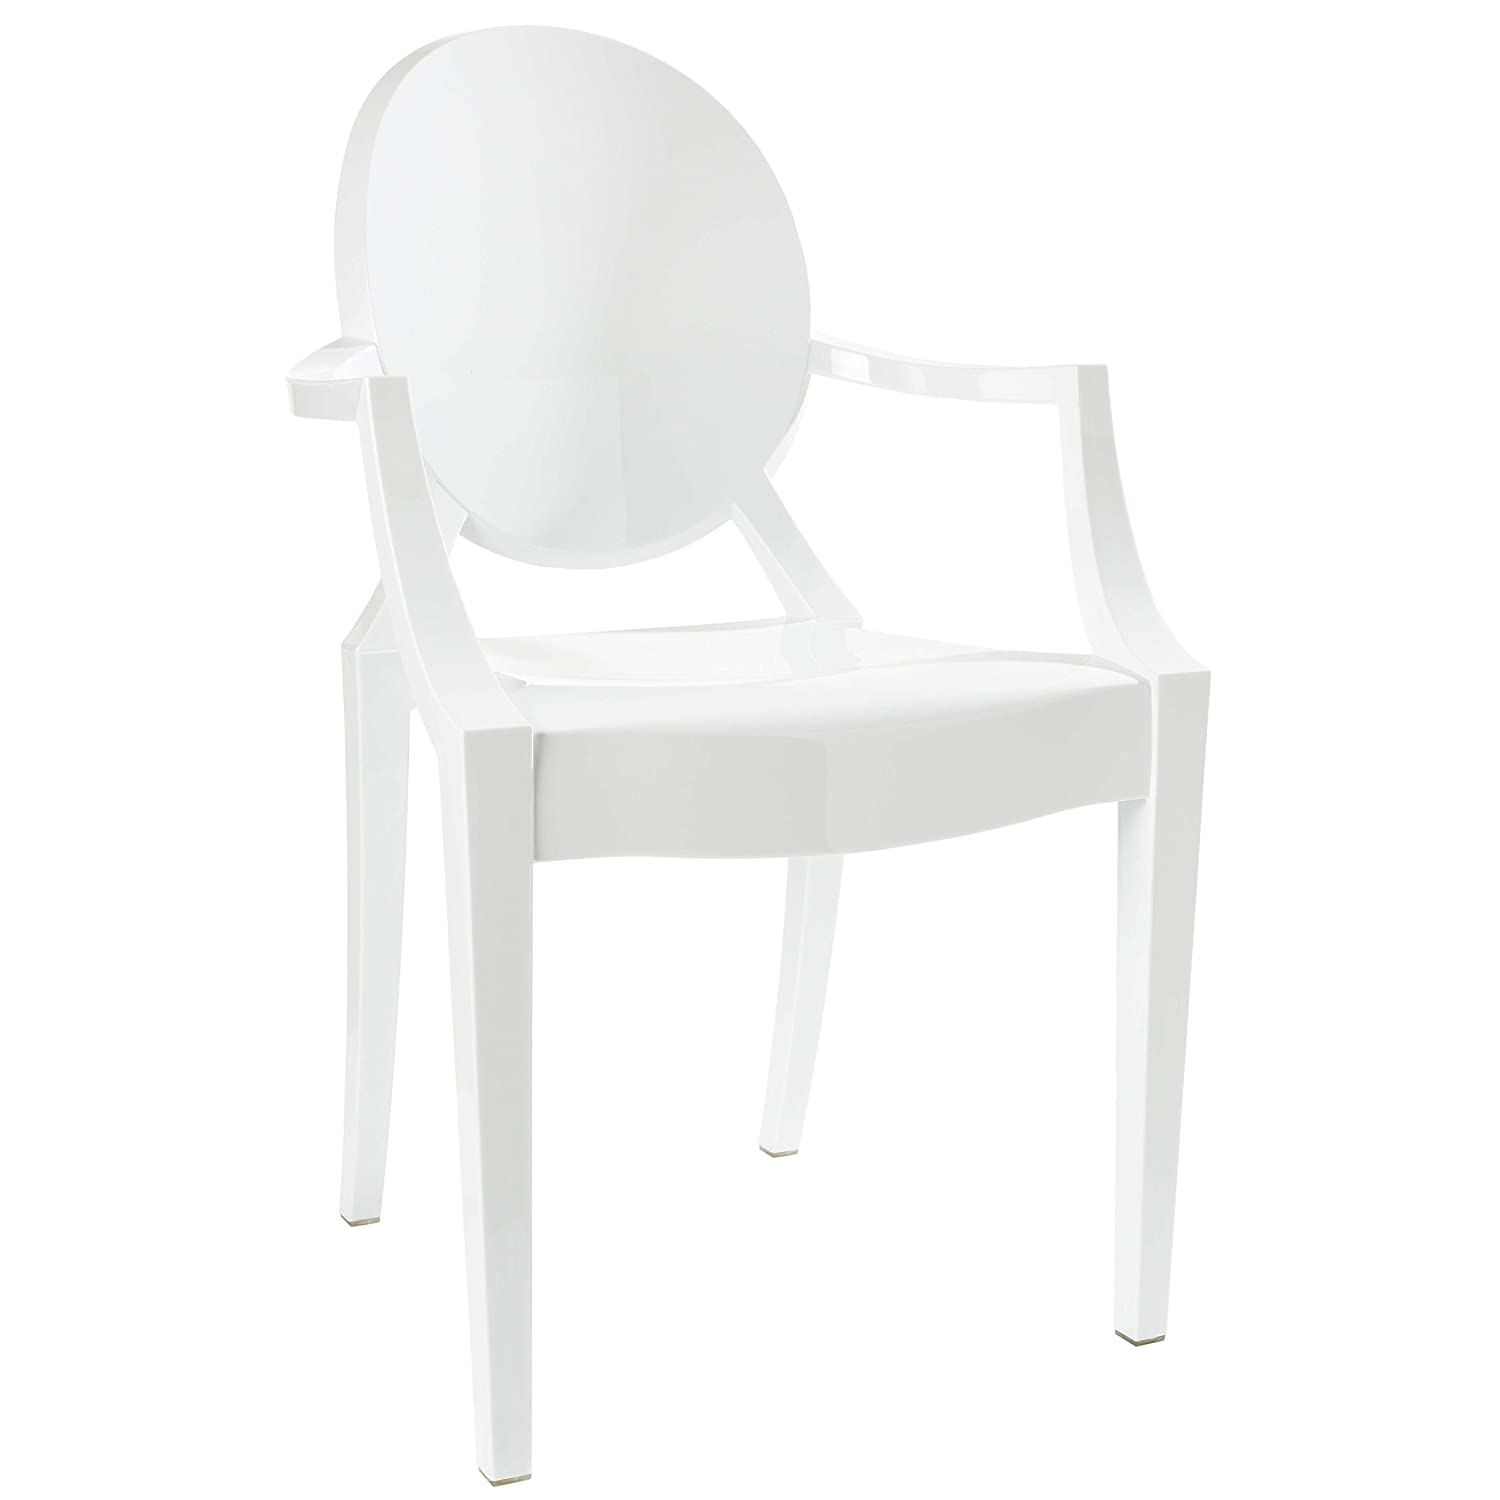 White Louis ghost arm chair. Hello Lovely, White French Home Decor for Fans of Country Interiors.